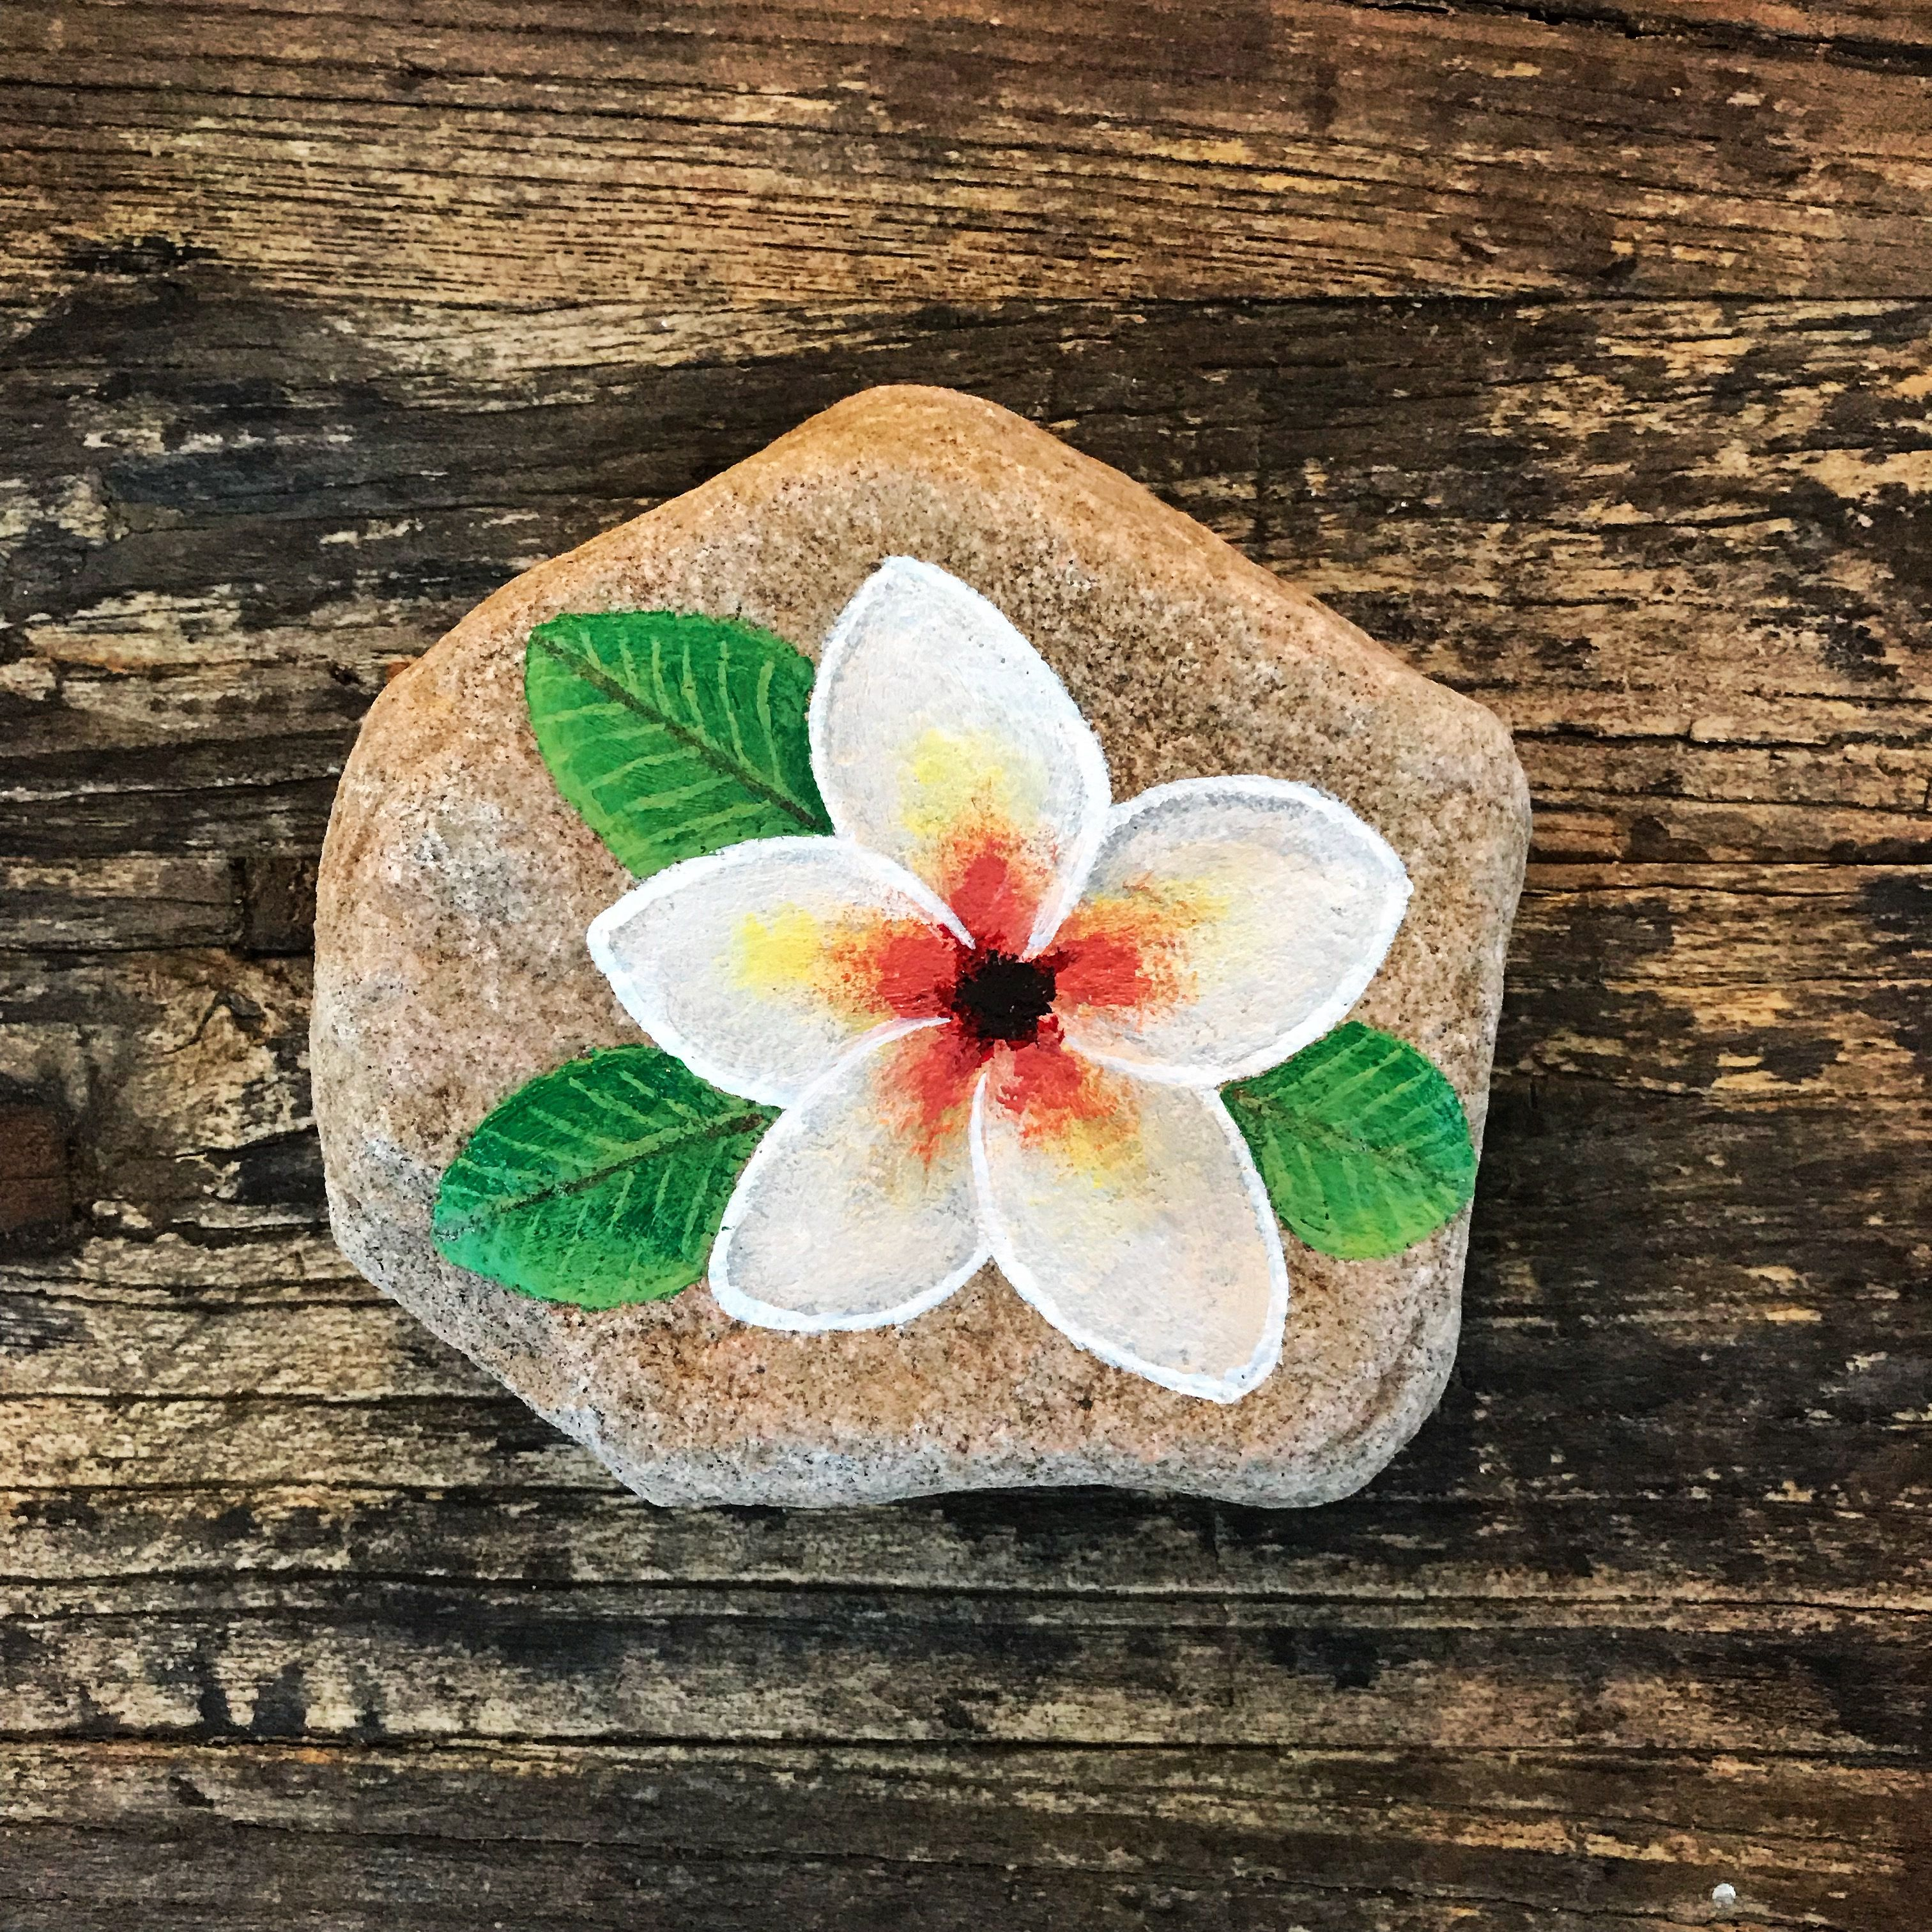 Flower Painted Rock Kindness Rocks Project Hand Painted Flower